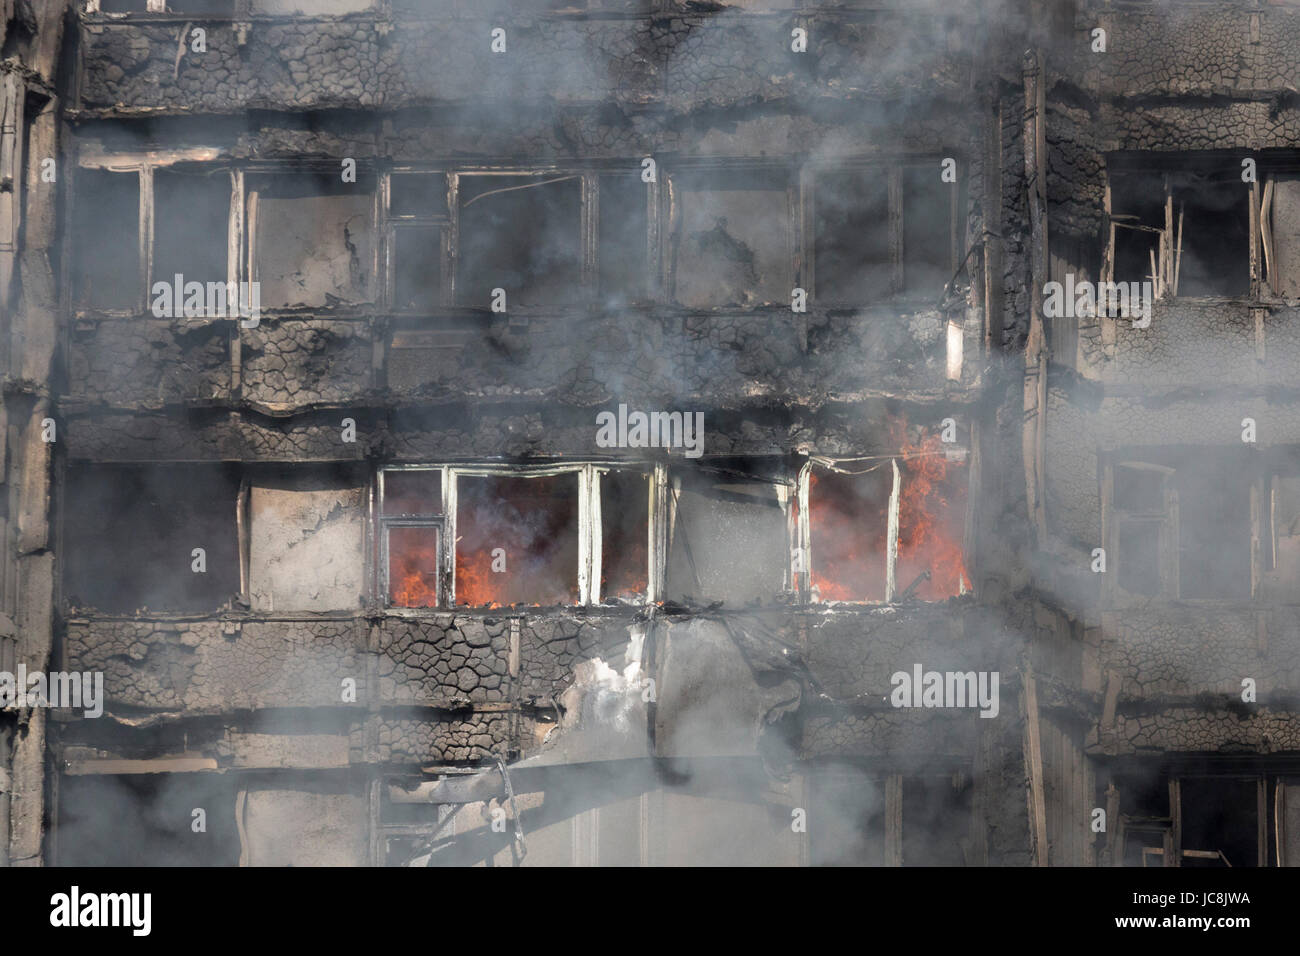 London, UK. 14th June, 2017. Fire is still burning inside the tower at 9am. At least 50 people have been taken to - Stock Image